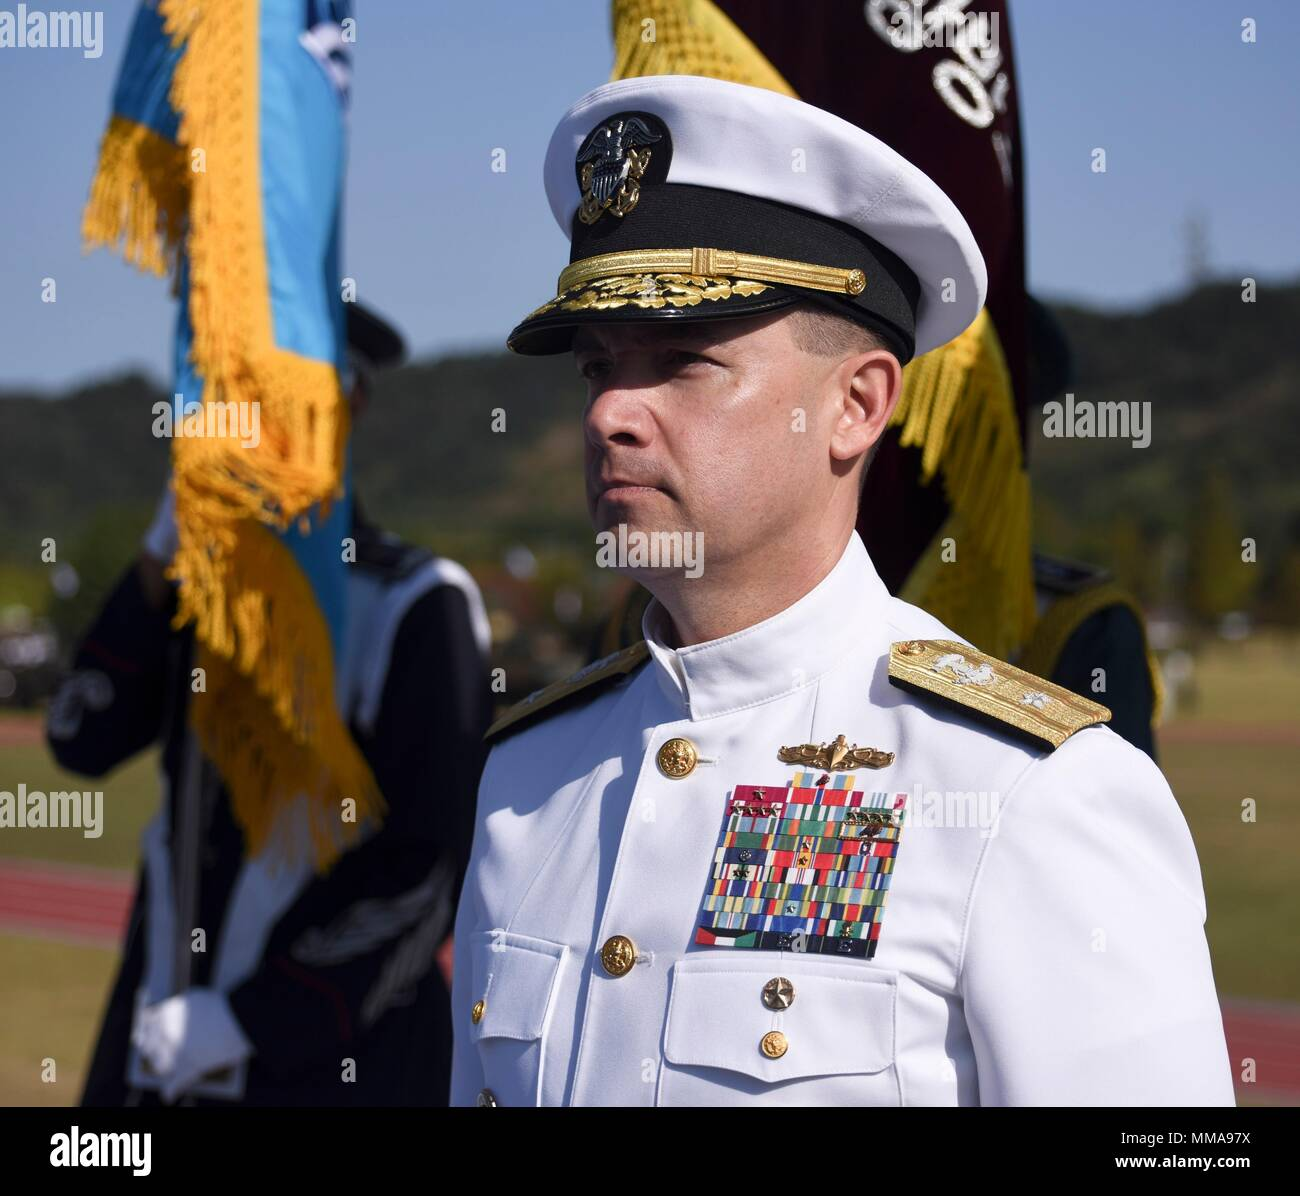 170928-N-TB148-107 PYEONGTAEK, Republic of Korea (Sept. 28, 2017) Rear Adm. Brad Cooper, commander, Naval Forces Korea (CNFK) stands during the 69th annual ROK Armed Forces Day Ceremony. Armed Forces Day commemorates the service of men and women in the ROK armed forces, the day that South Korea broke through the 38th parallel during the Korean War in 1950. Cooper is also presented the Presidential Unit Citation by ROK President Moon, Jae-in, this is the first time a U.S. Navy command is presented this award since the end of the Korean War.  (U.S. Navy photo by Mass Communication Specialist Sea Stock Photo